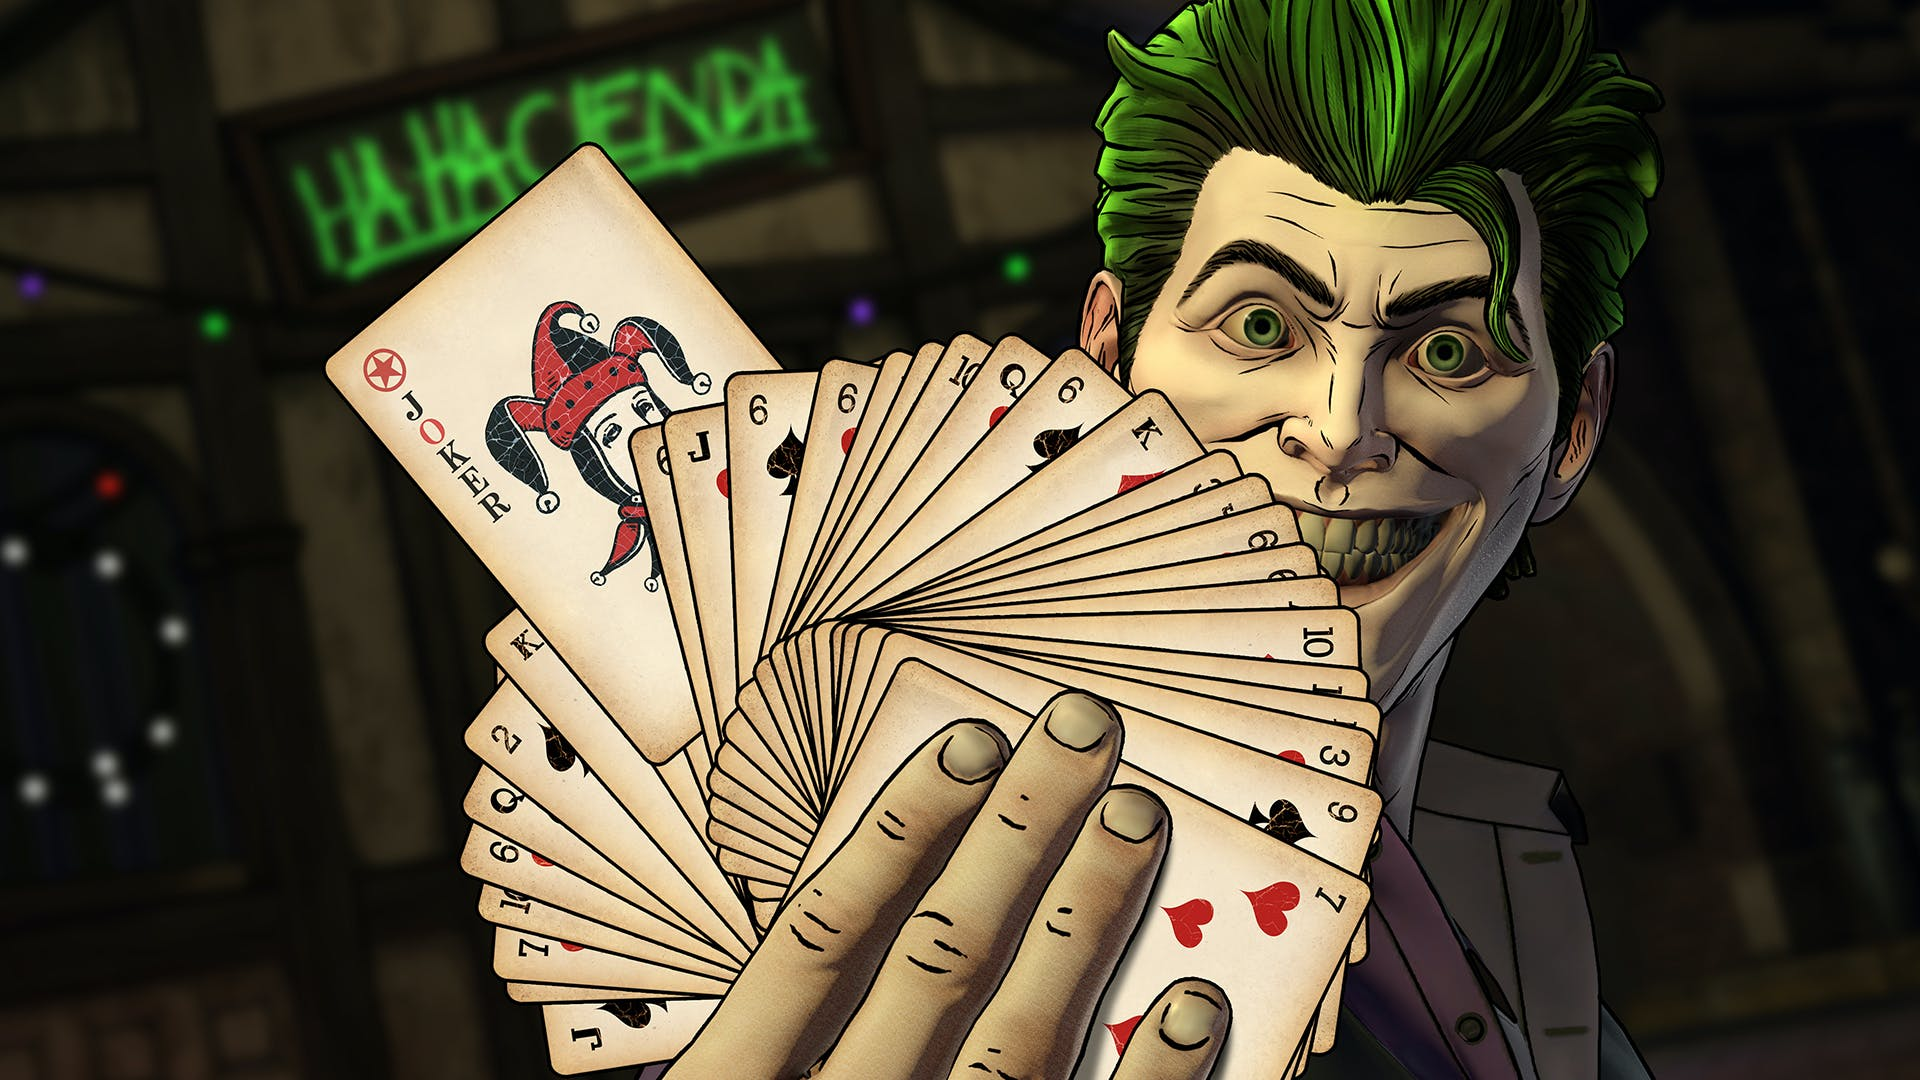 https://images.prismic.io/fanatical/306765445a3341c155a50796c1be42254ebff7b9_joker_1920x1080.jpg?auto=compress,format